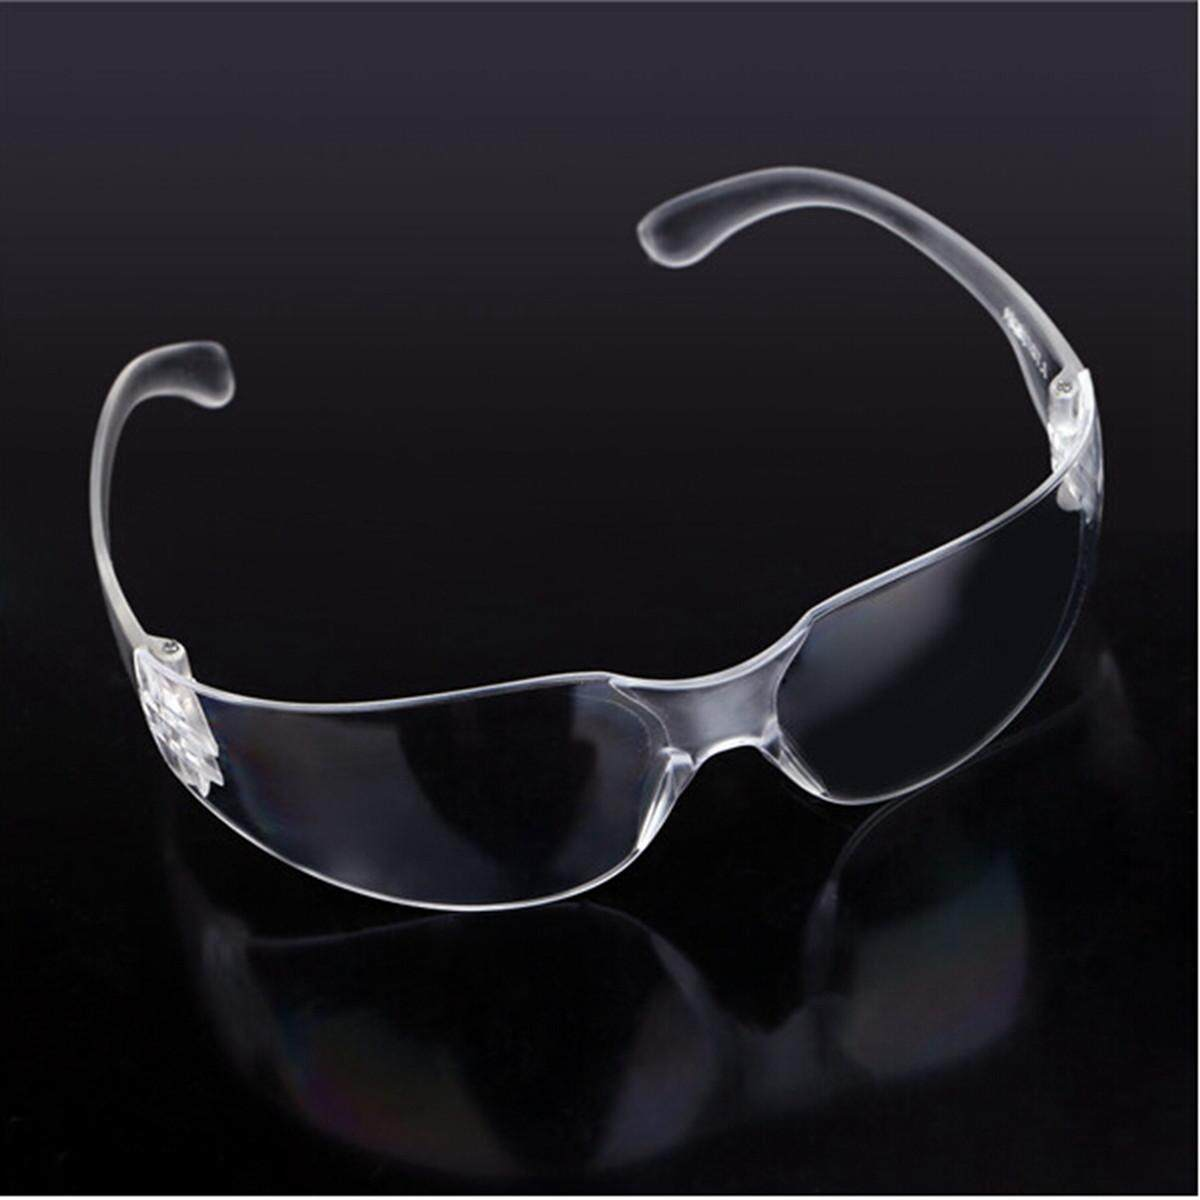 7pcs Lucency Safety Eye Protection Goggles Glasses for Workplace Lab Industrial Dust - intl